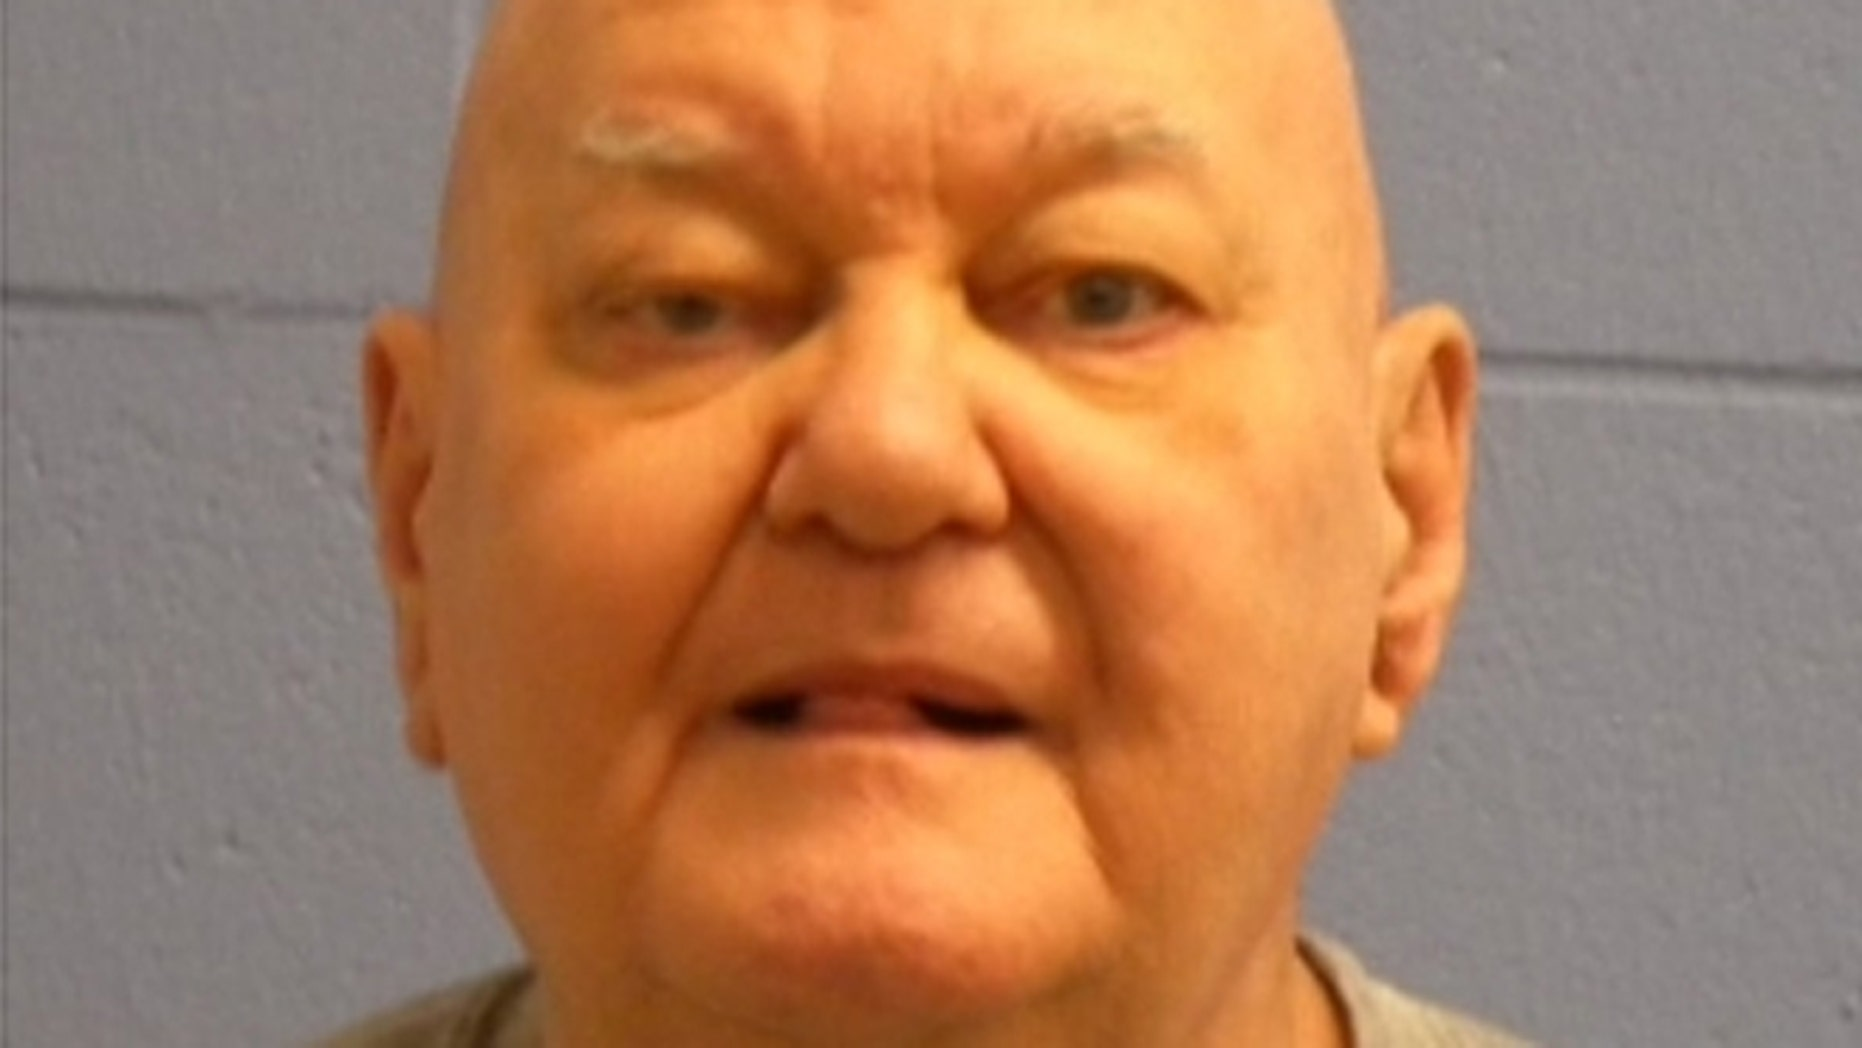 Eugene Ornstead, 76, applied for his firefighter's pension just days after committing the murder, MyFoxChicago.com reported.